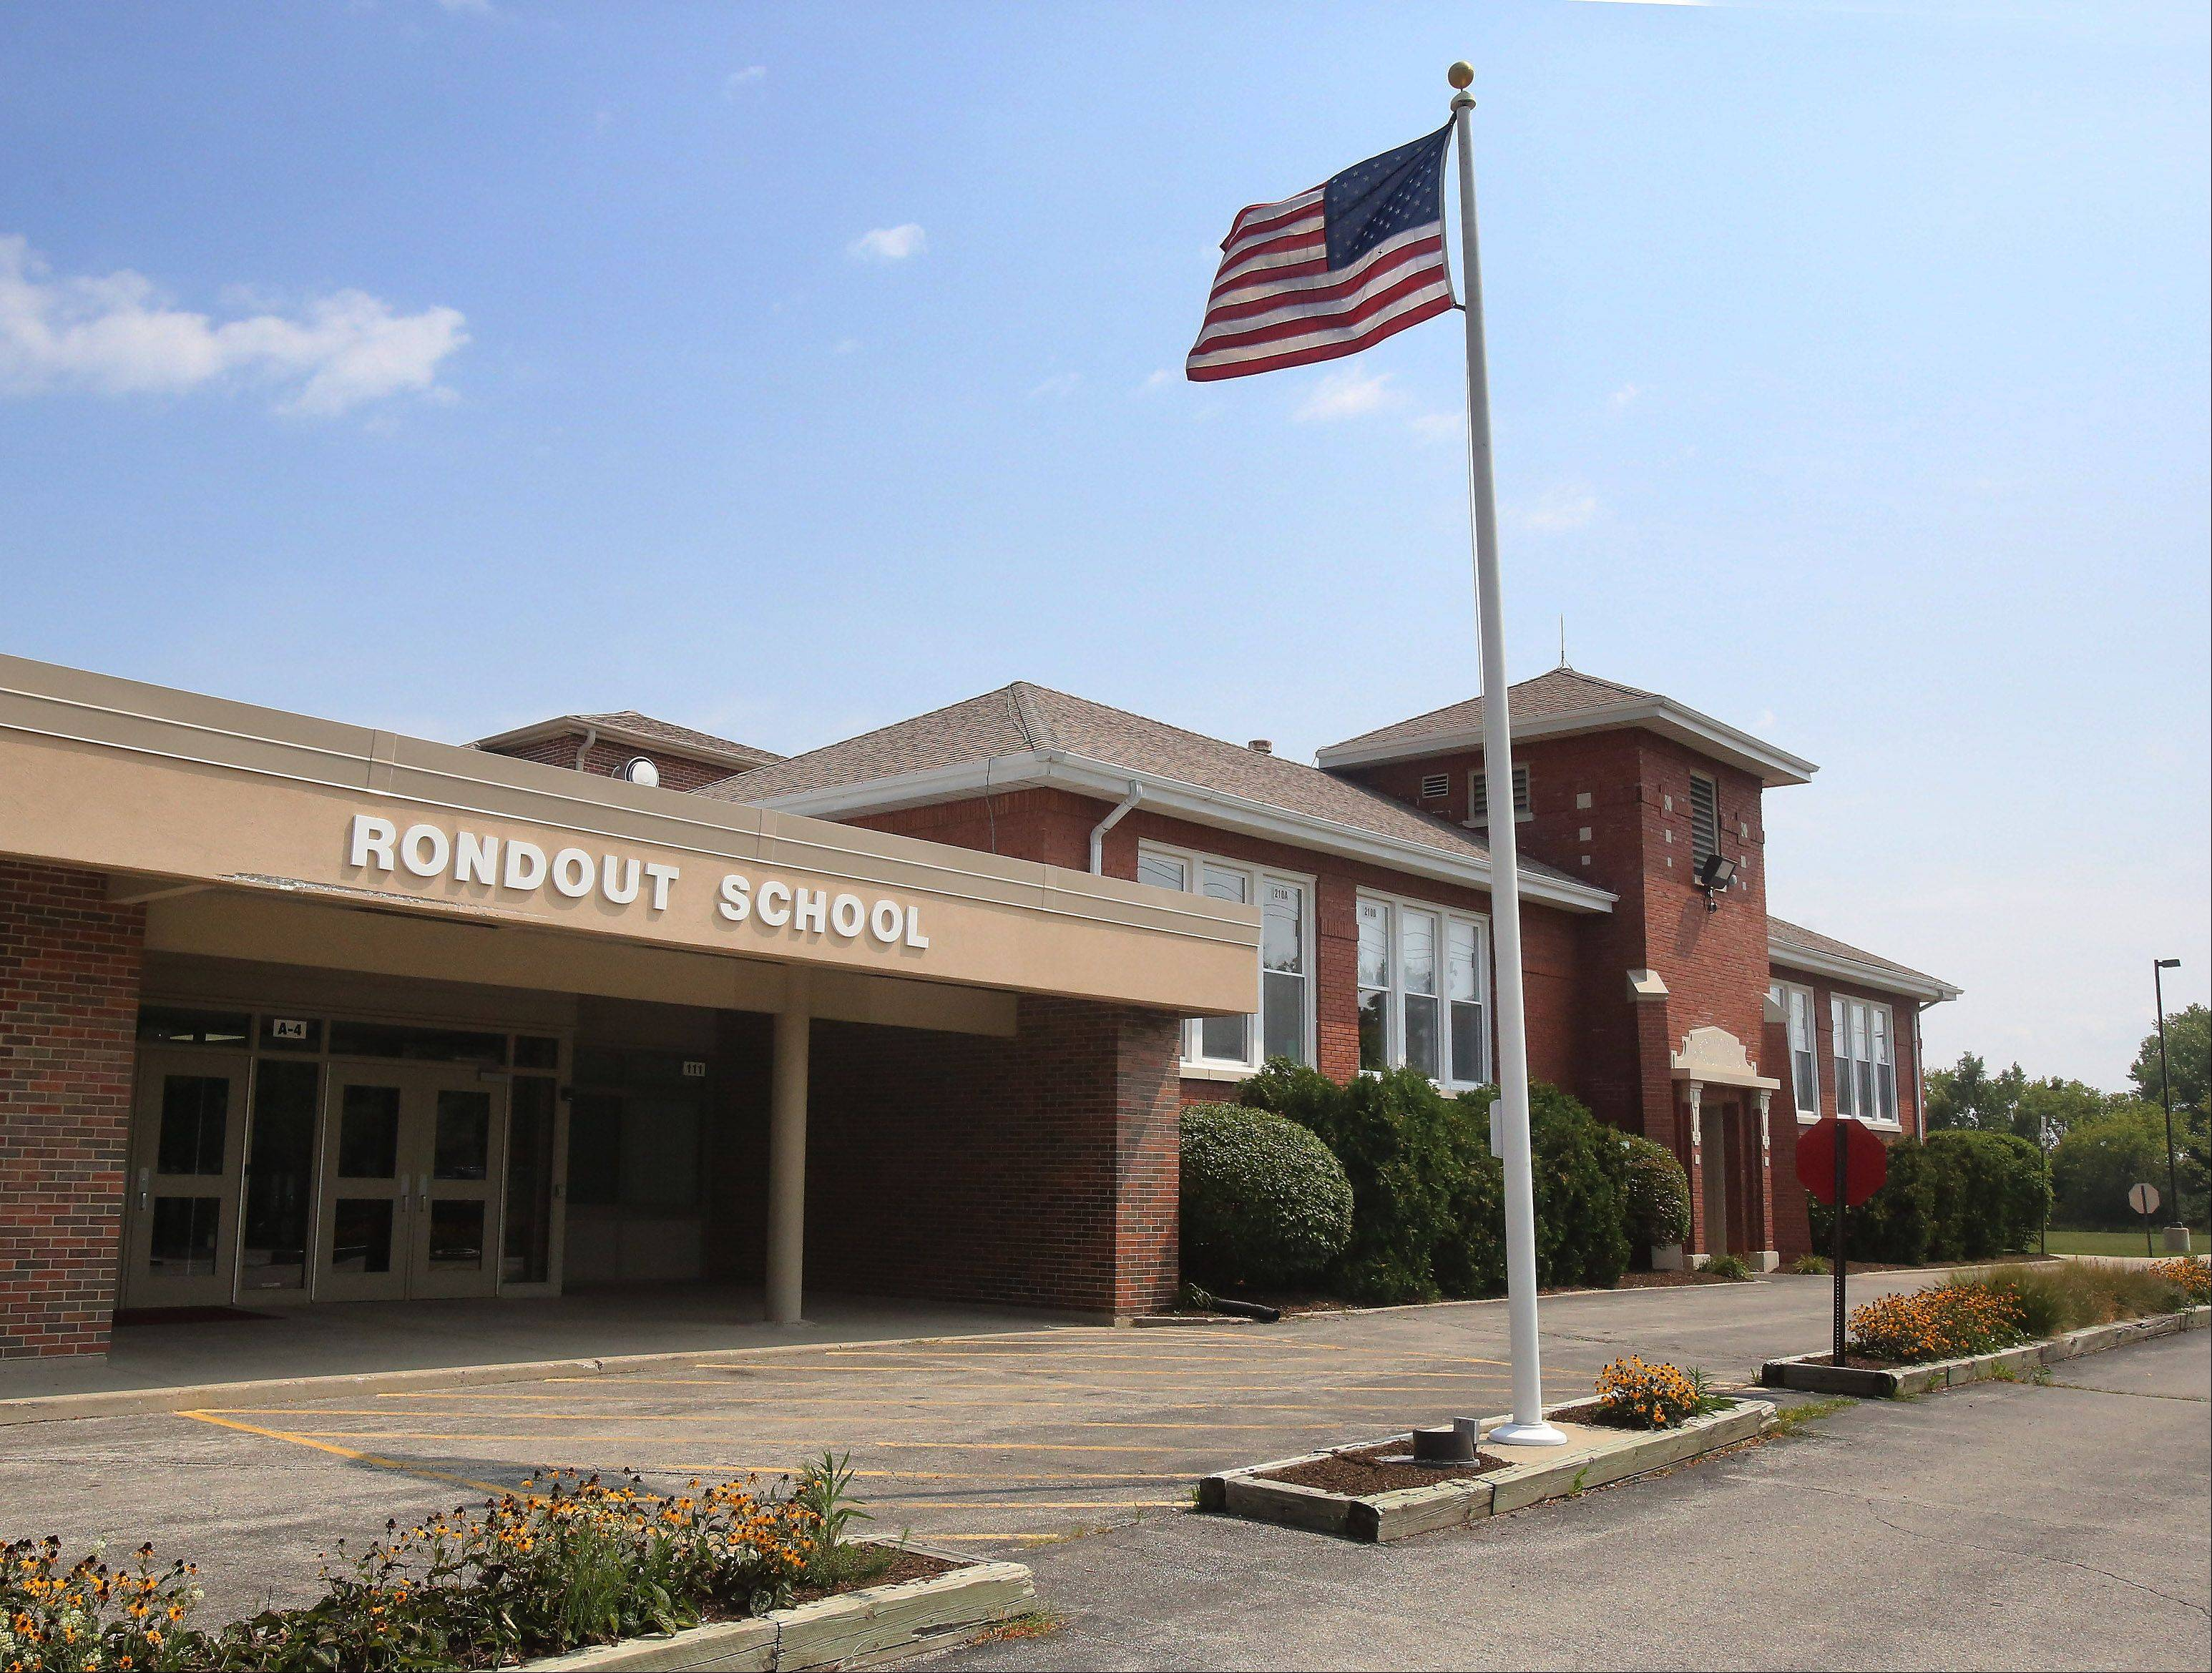 Rondout School in 2013. Additions were built in 1973, 1999 and 2009, but the original section, a one-room school built in 1917, is still used daily.